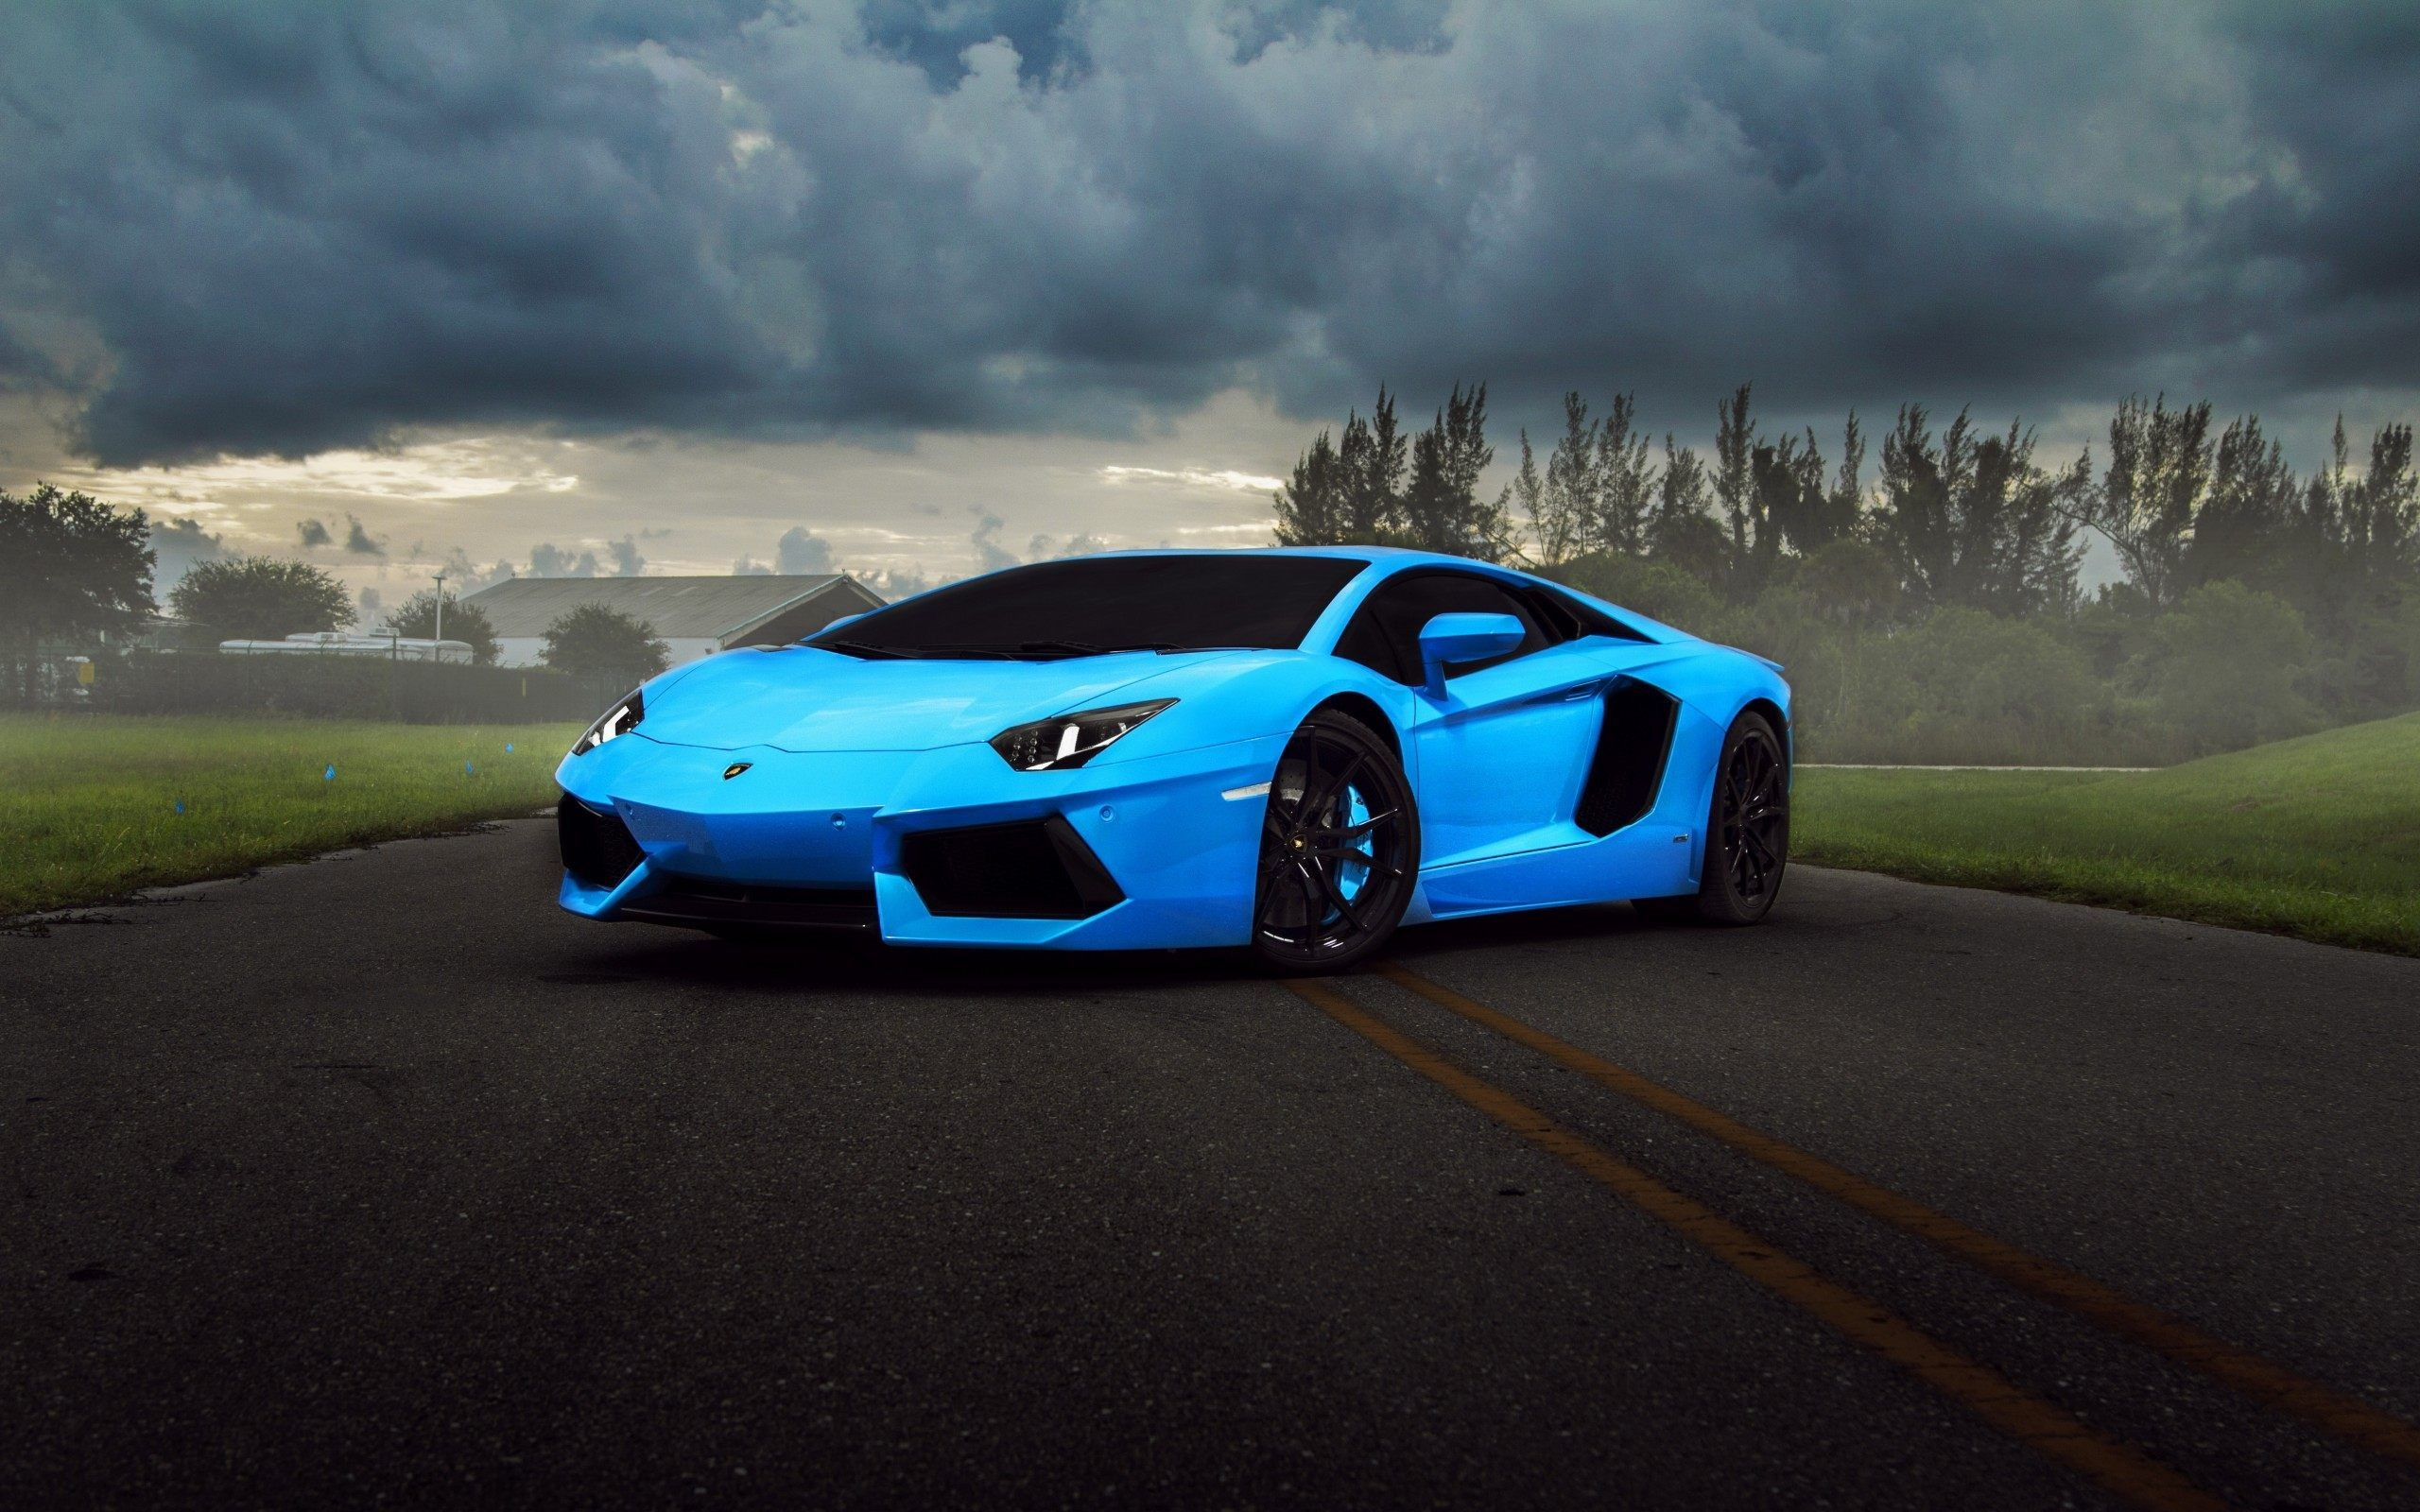 Res: 2560x1600, Blue Lamborghini Wallpapers Free Vehicles Wallpapers Pinterest Lamborghini Wallpaper And Hd Desktop